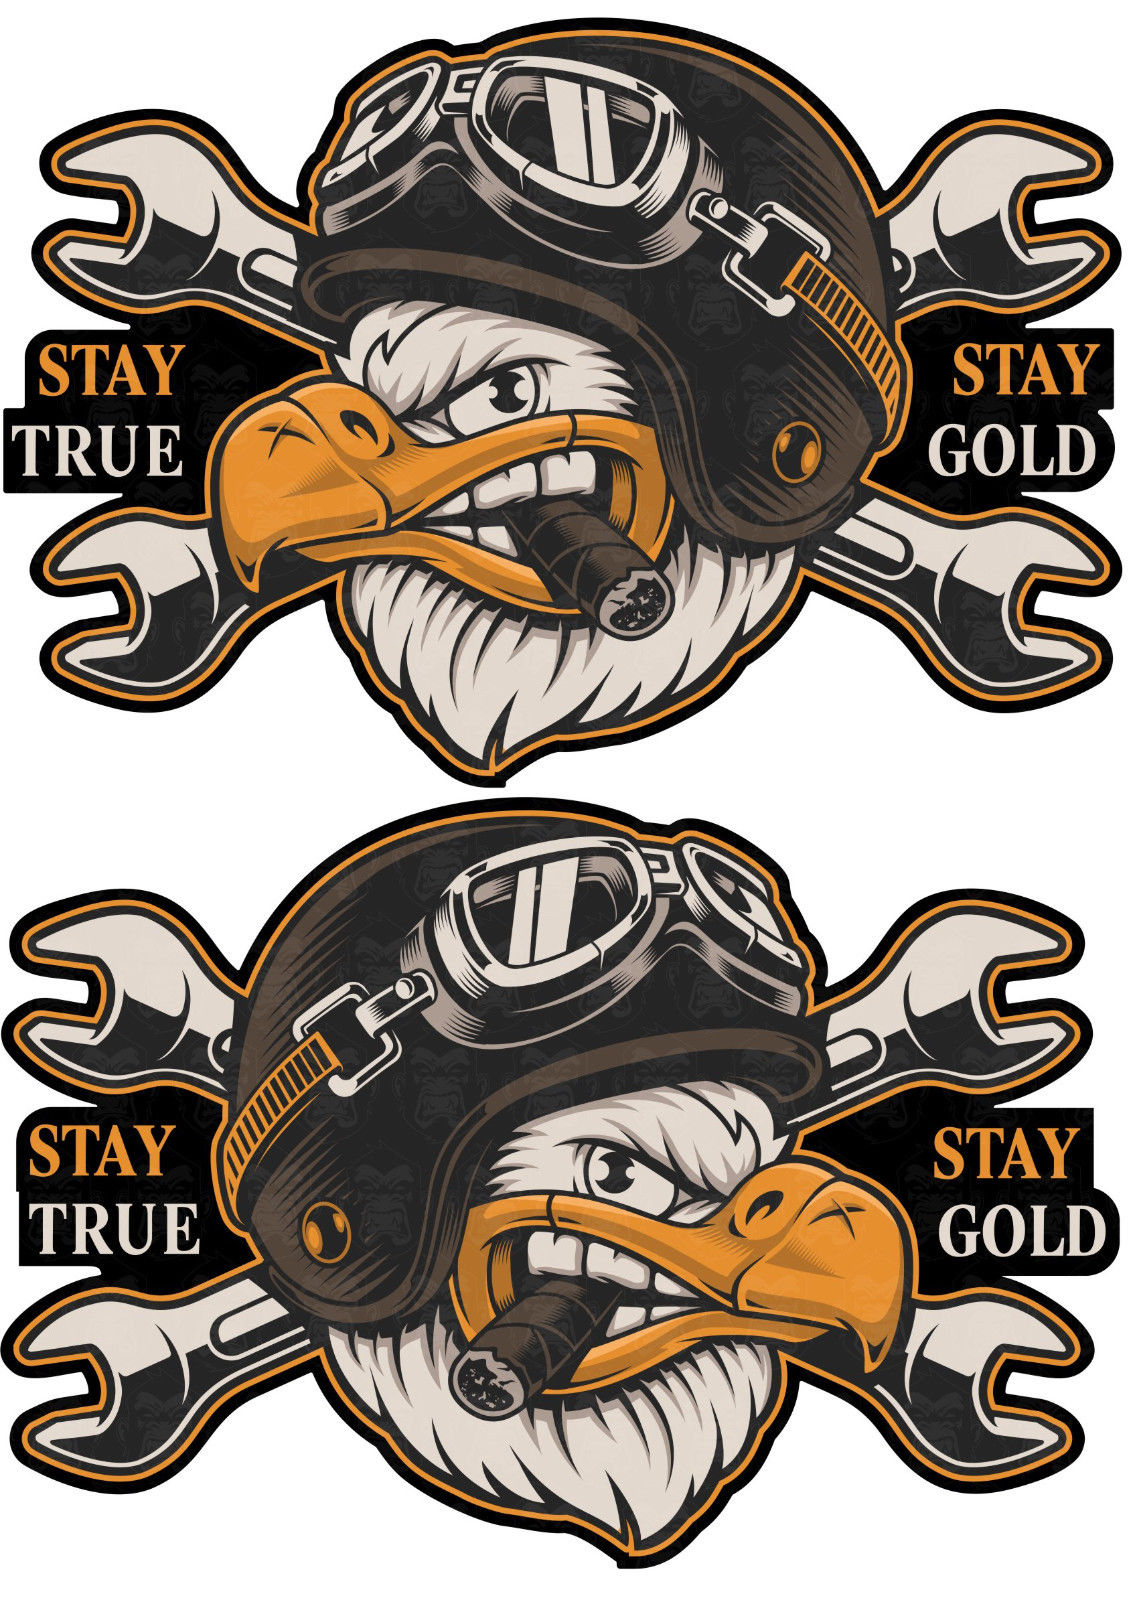 2psc Oldschool Biker Sticker 1percent Chopper Aufkleber Stay True Motorrad USA Bobber car stickers